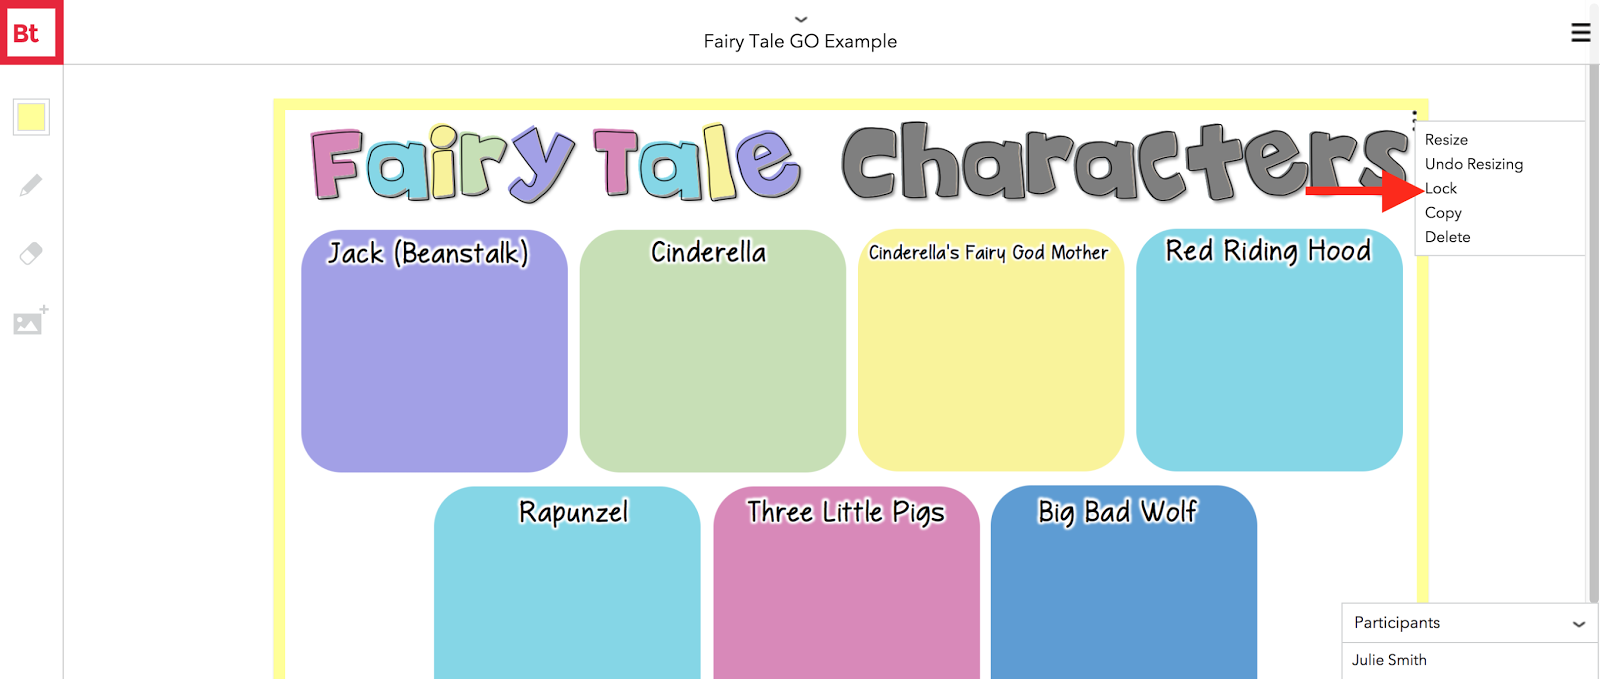 Use the web tool, BoardThing, to talk about characterization with fairy tale characters.